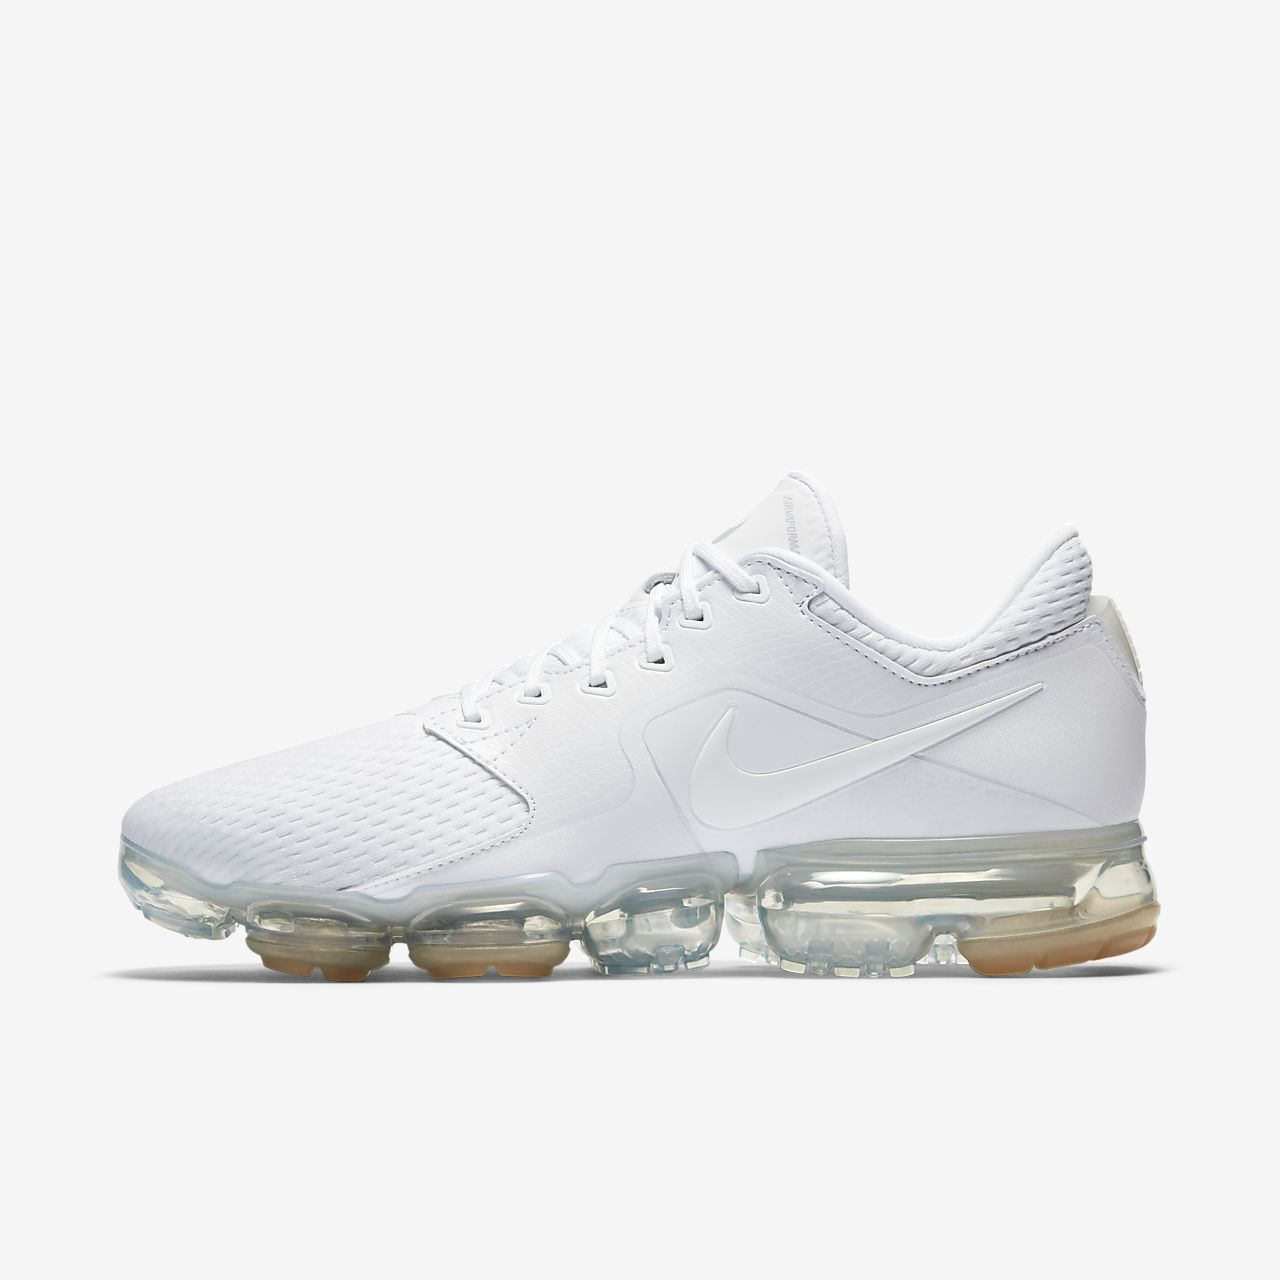 huge selection of a2ed8 5b841 ... Chaussure Nike Air VaporMax pour Homme